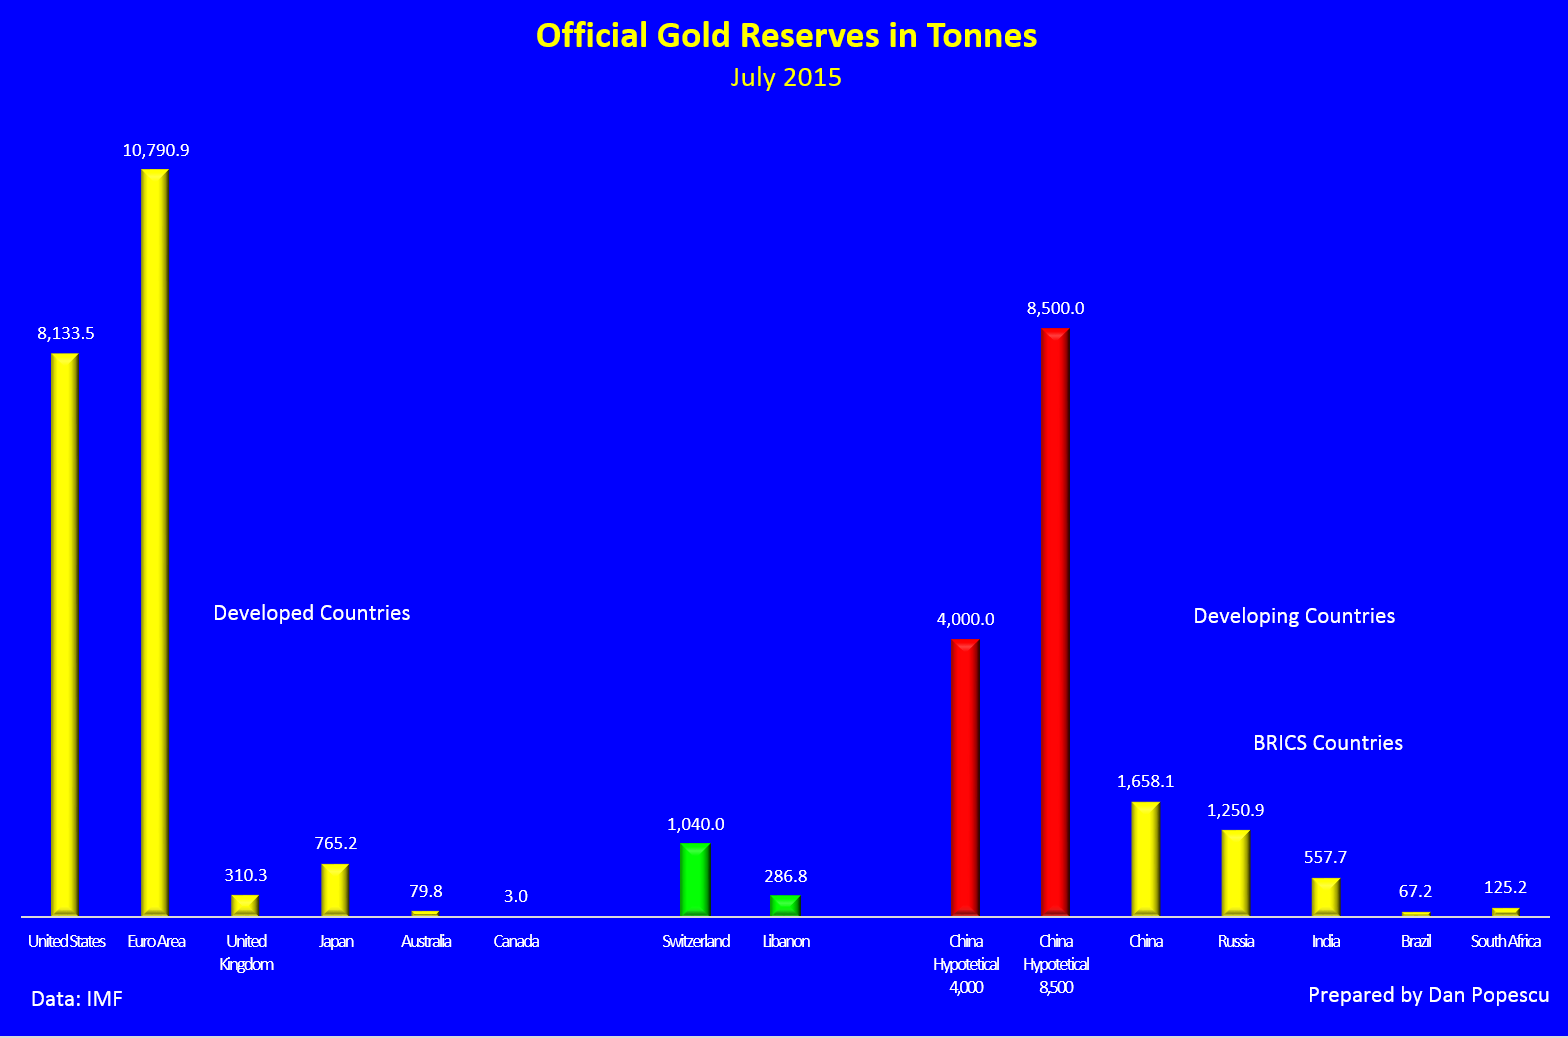 Officials gold reserves in tonnes